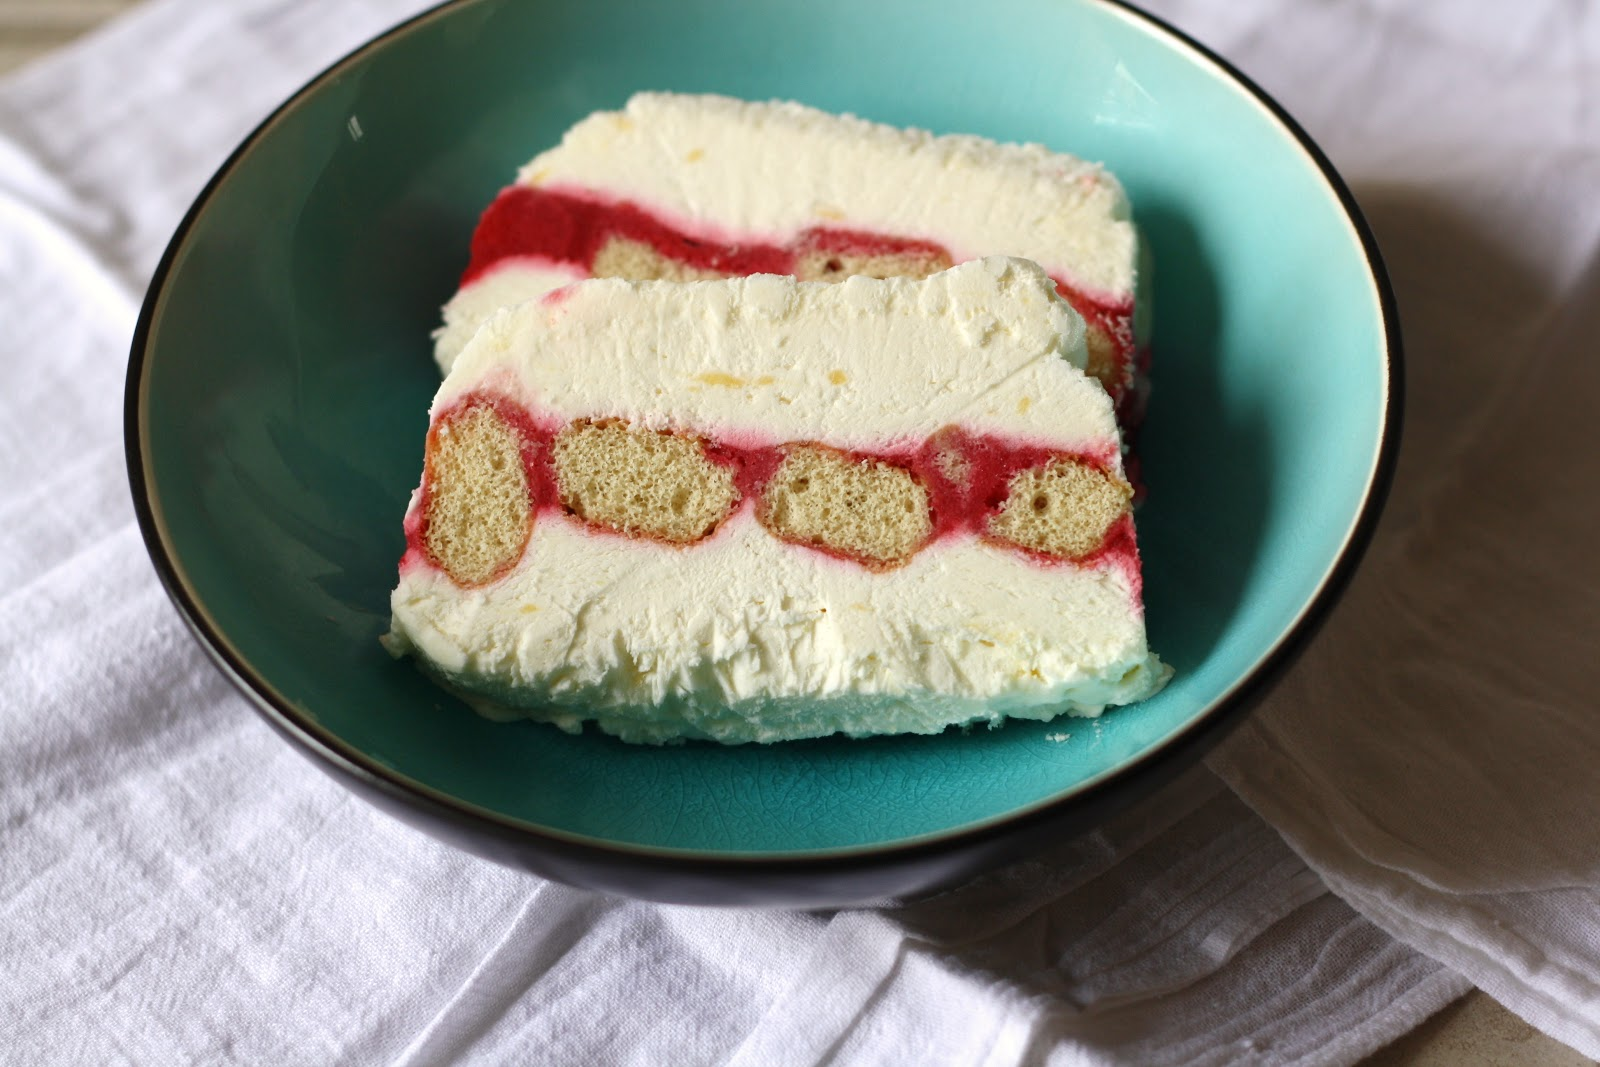 sunday sweets: lemon-raspberry semifreddo